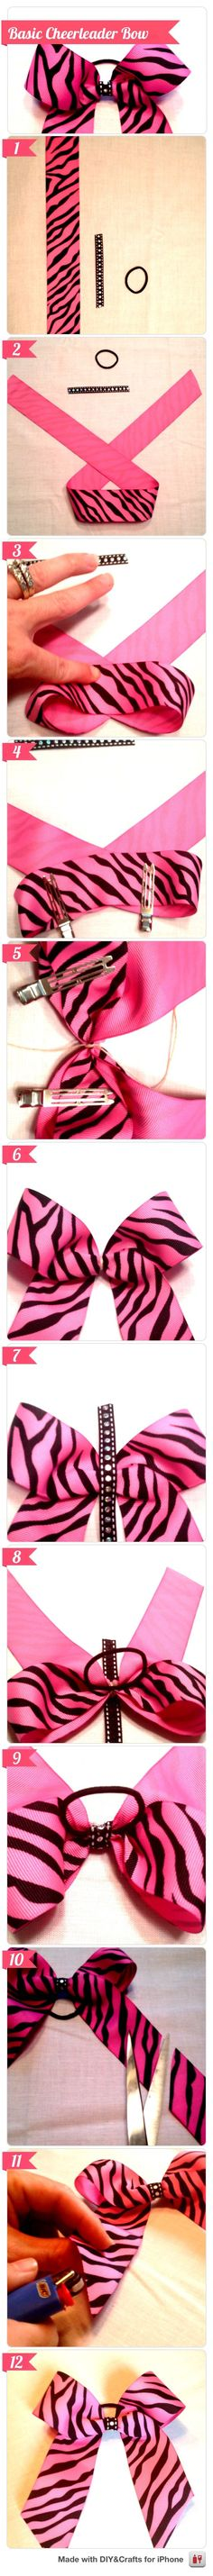 I was never a cheerleader but if I could get away with wearing cheer bows everyday as an adult I would!